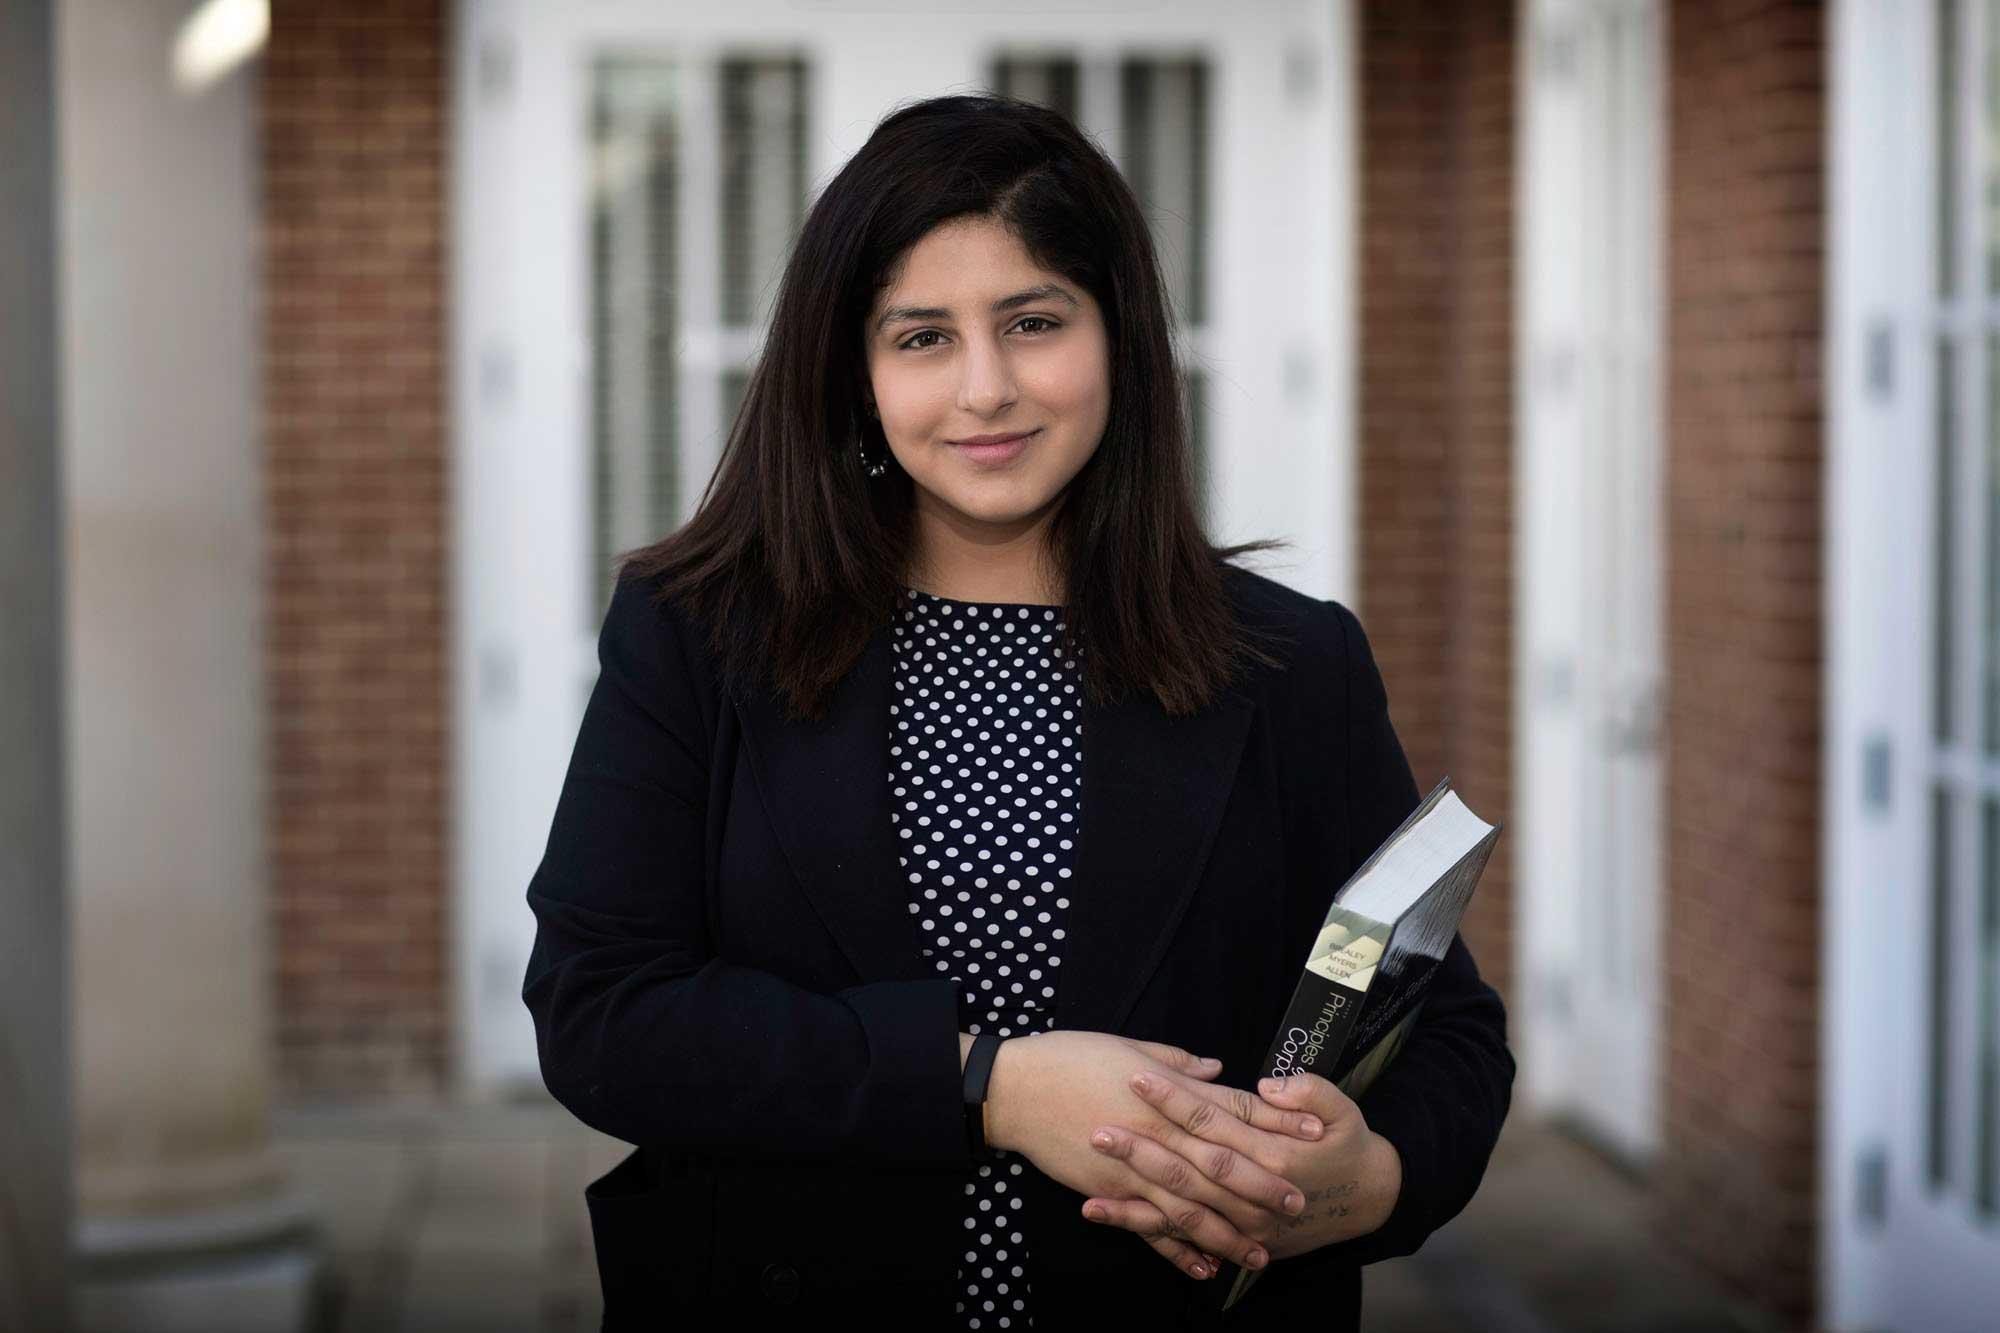 Transfer student Shivani Tara Seth is a third-year student in the McIntire School of Commerce.